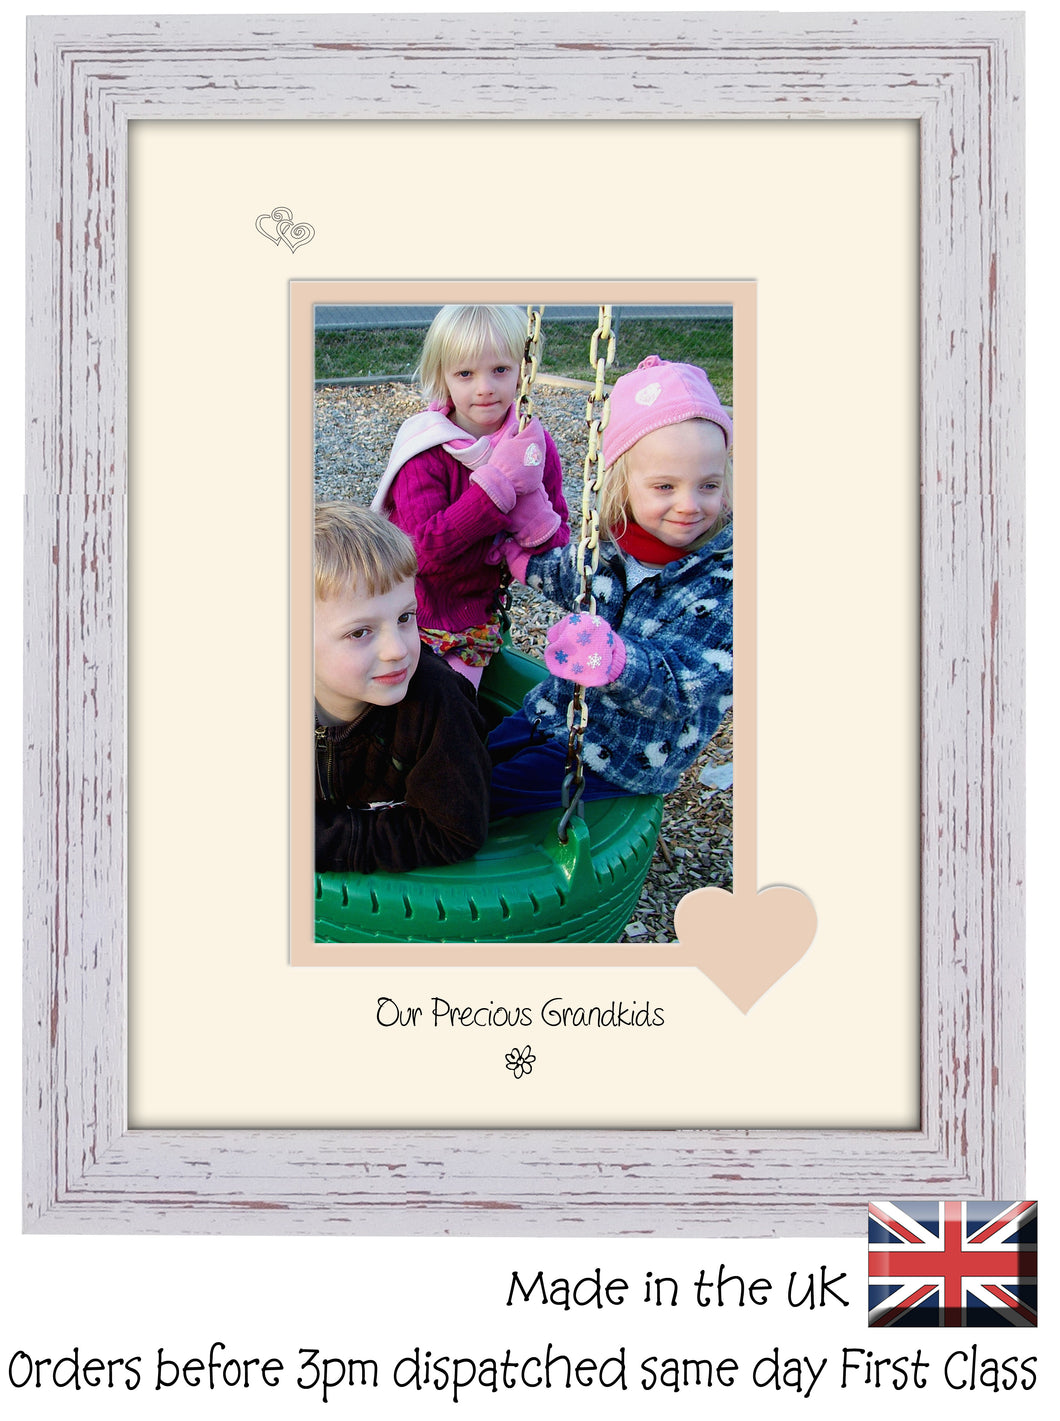 Grandkids Photo Frame - Our precious Grandkids Portrait photo frame 6